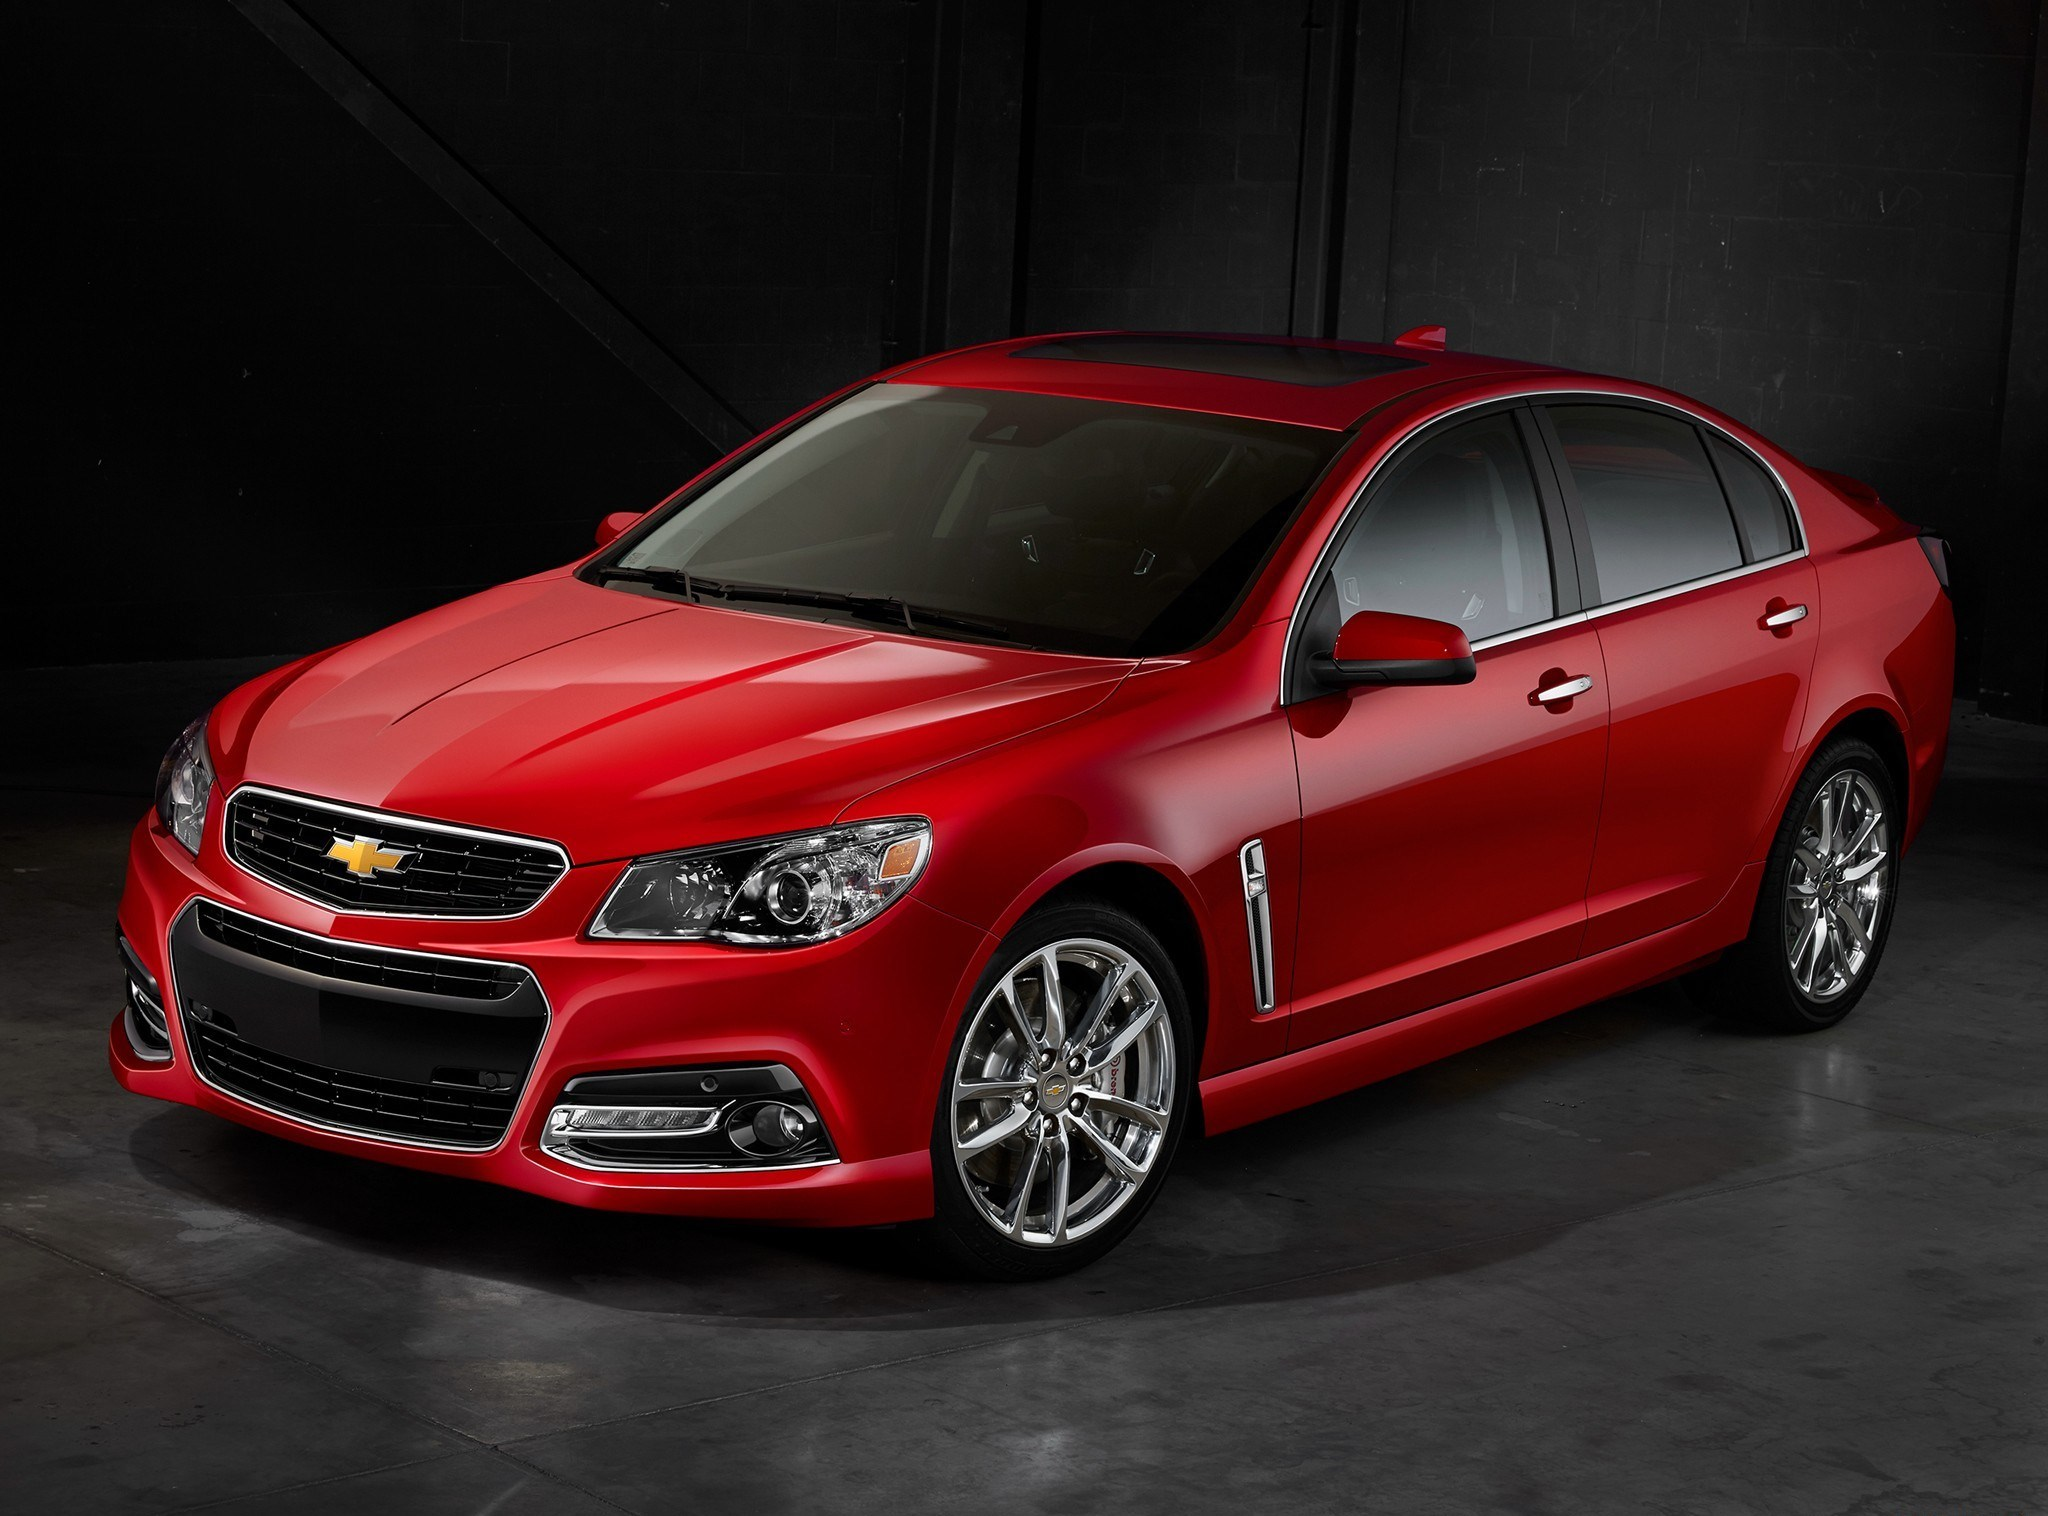 chevrolet-1080p-windows-wallpaper-wpc9003470